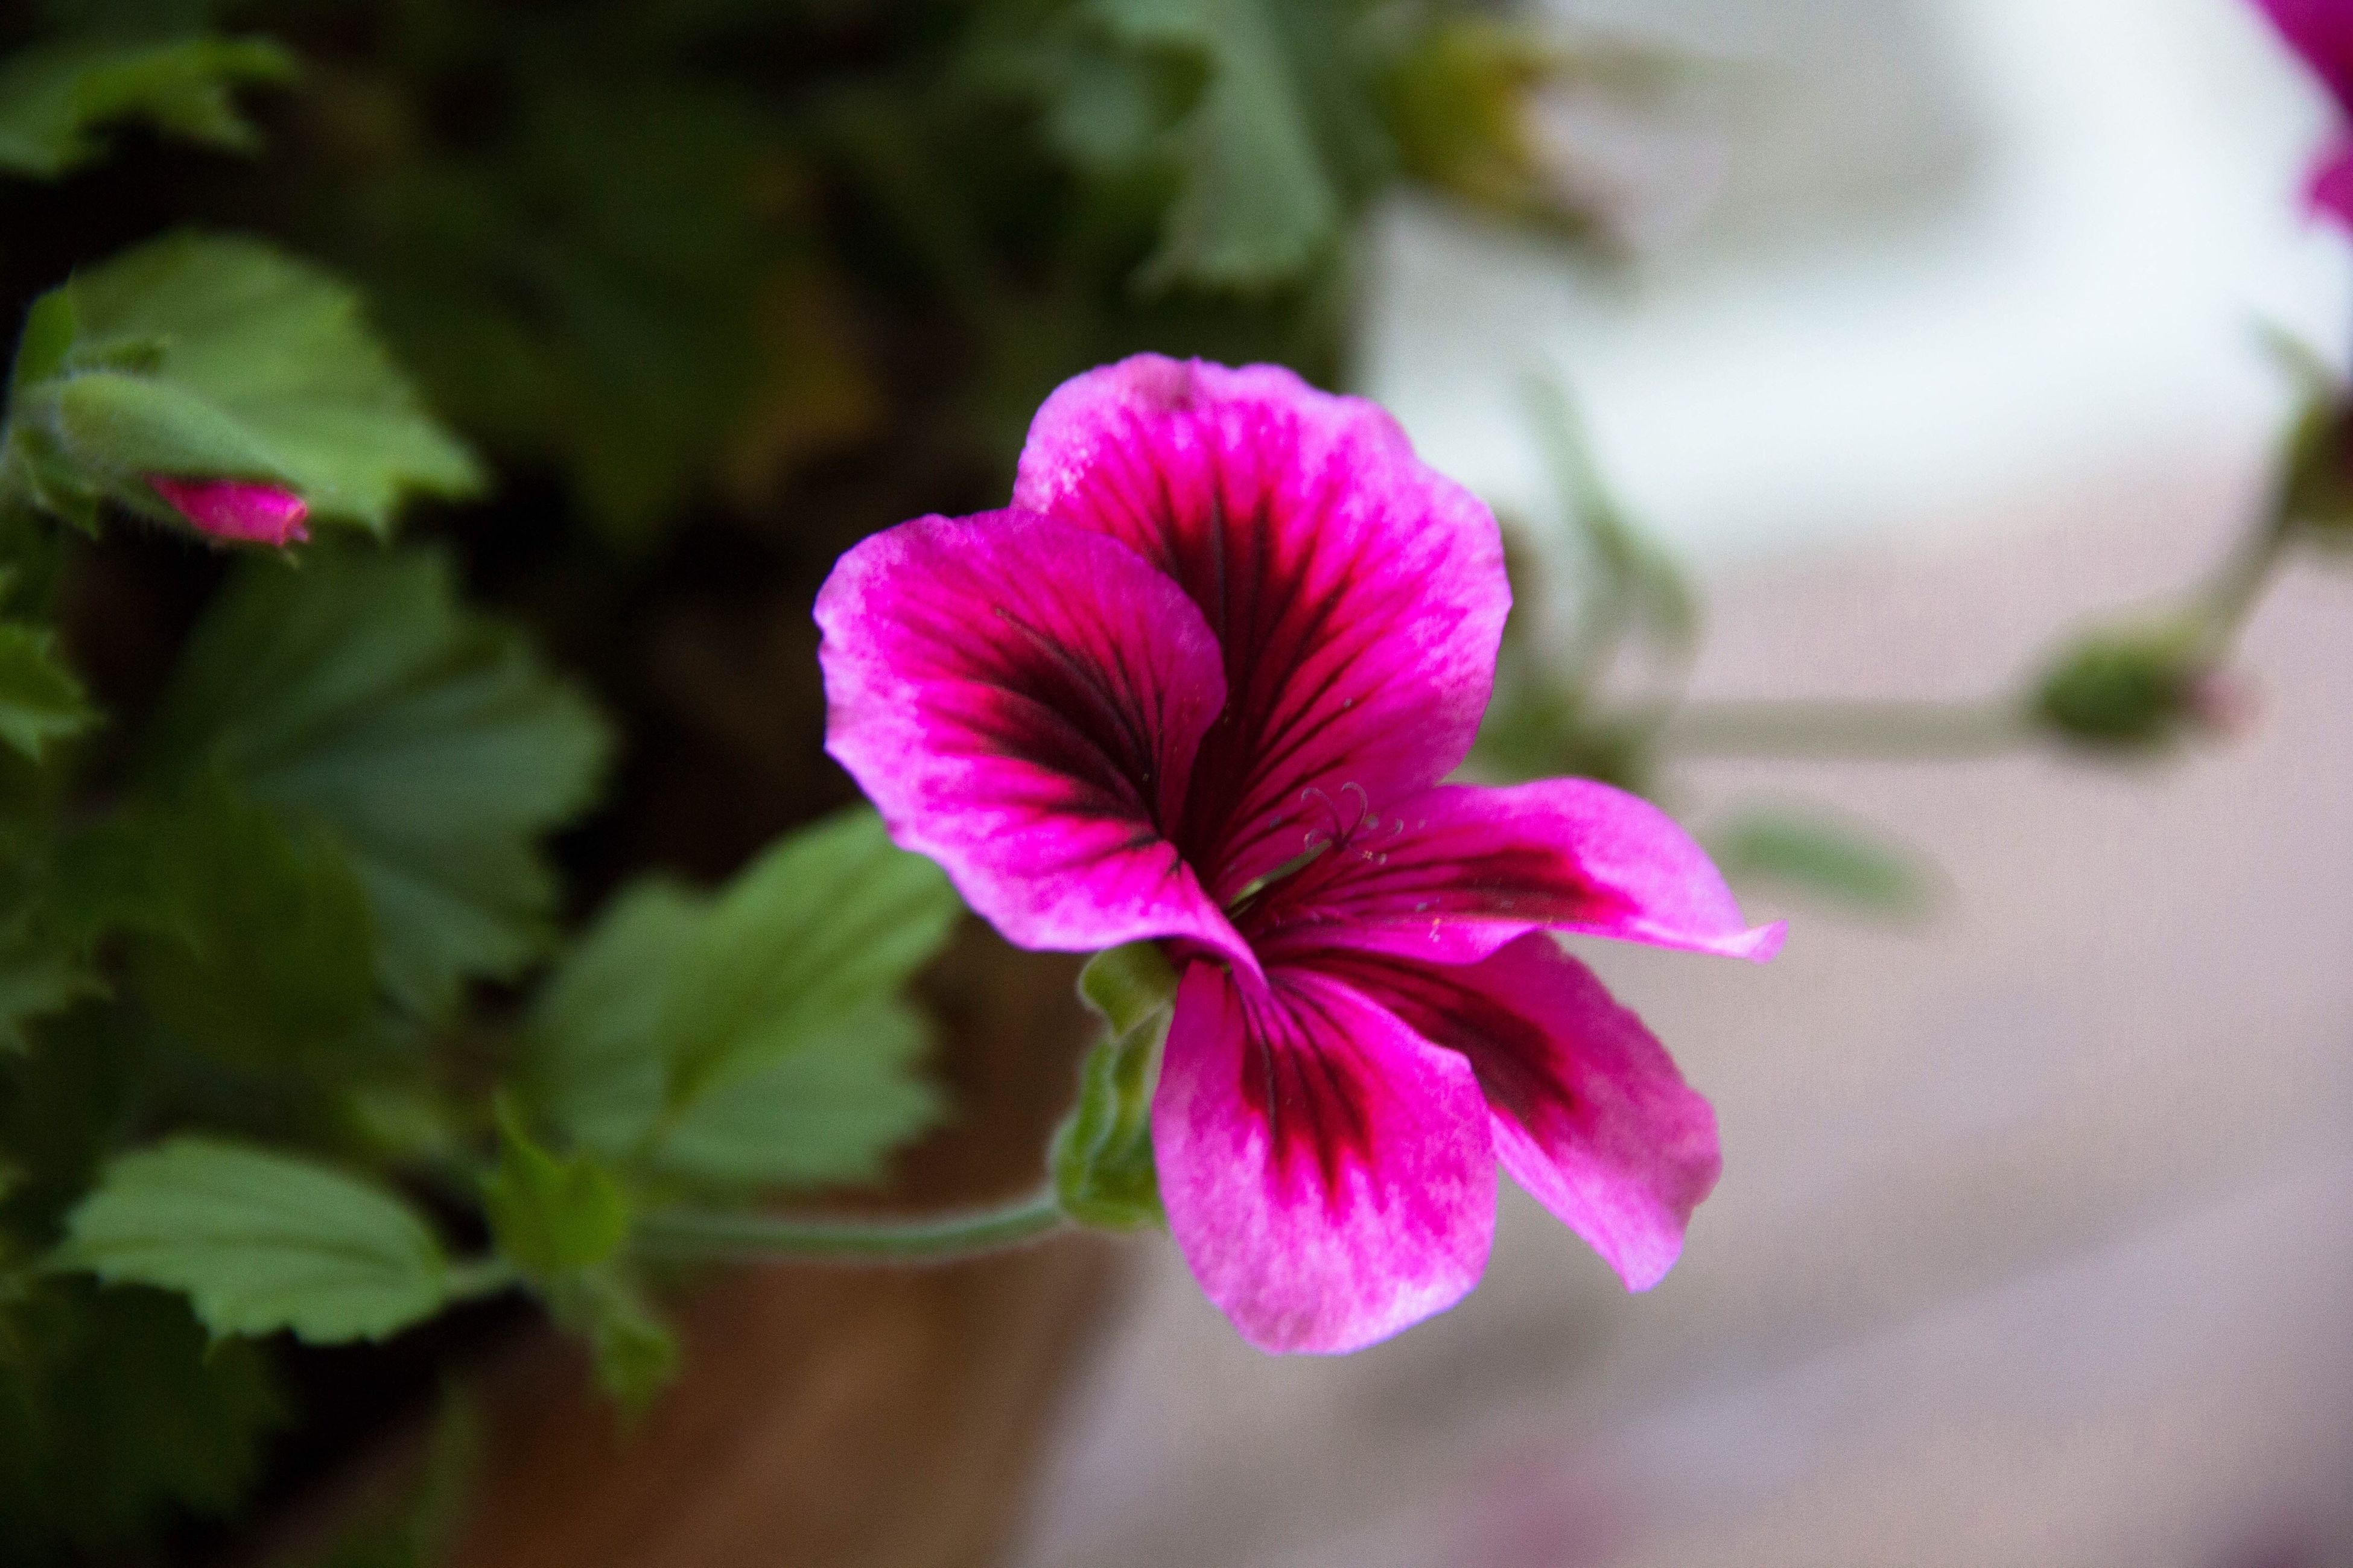 flower, freshness, petal, fragility, pink color, flower head, growth, close-up, beauty in nature, focus on foreground, nature, blooming, plant, selective focus, pink, in bloom, purple, blossom, stem, day, outdoors, no people, botany, stamen, pollen, softness